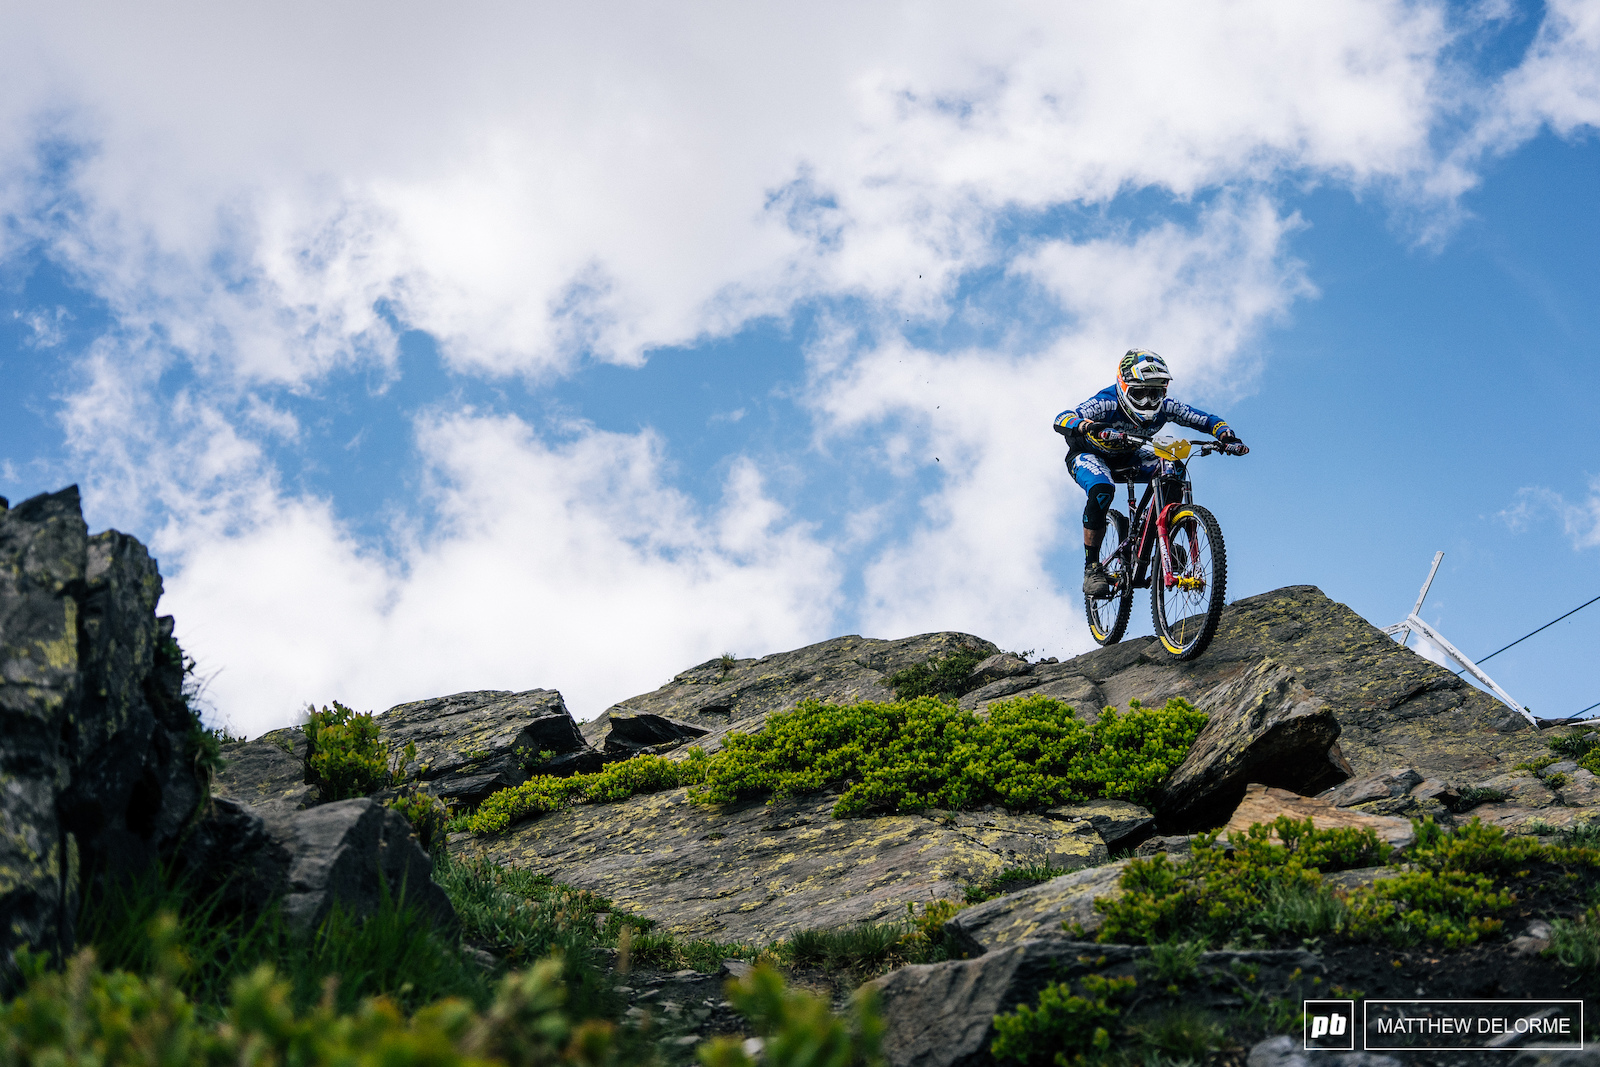 No roots rocks or steep terrain could slow down Sam Hill this weekend.